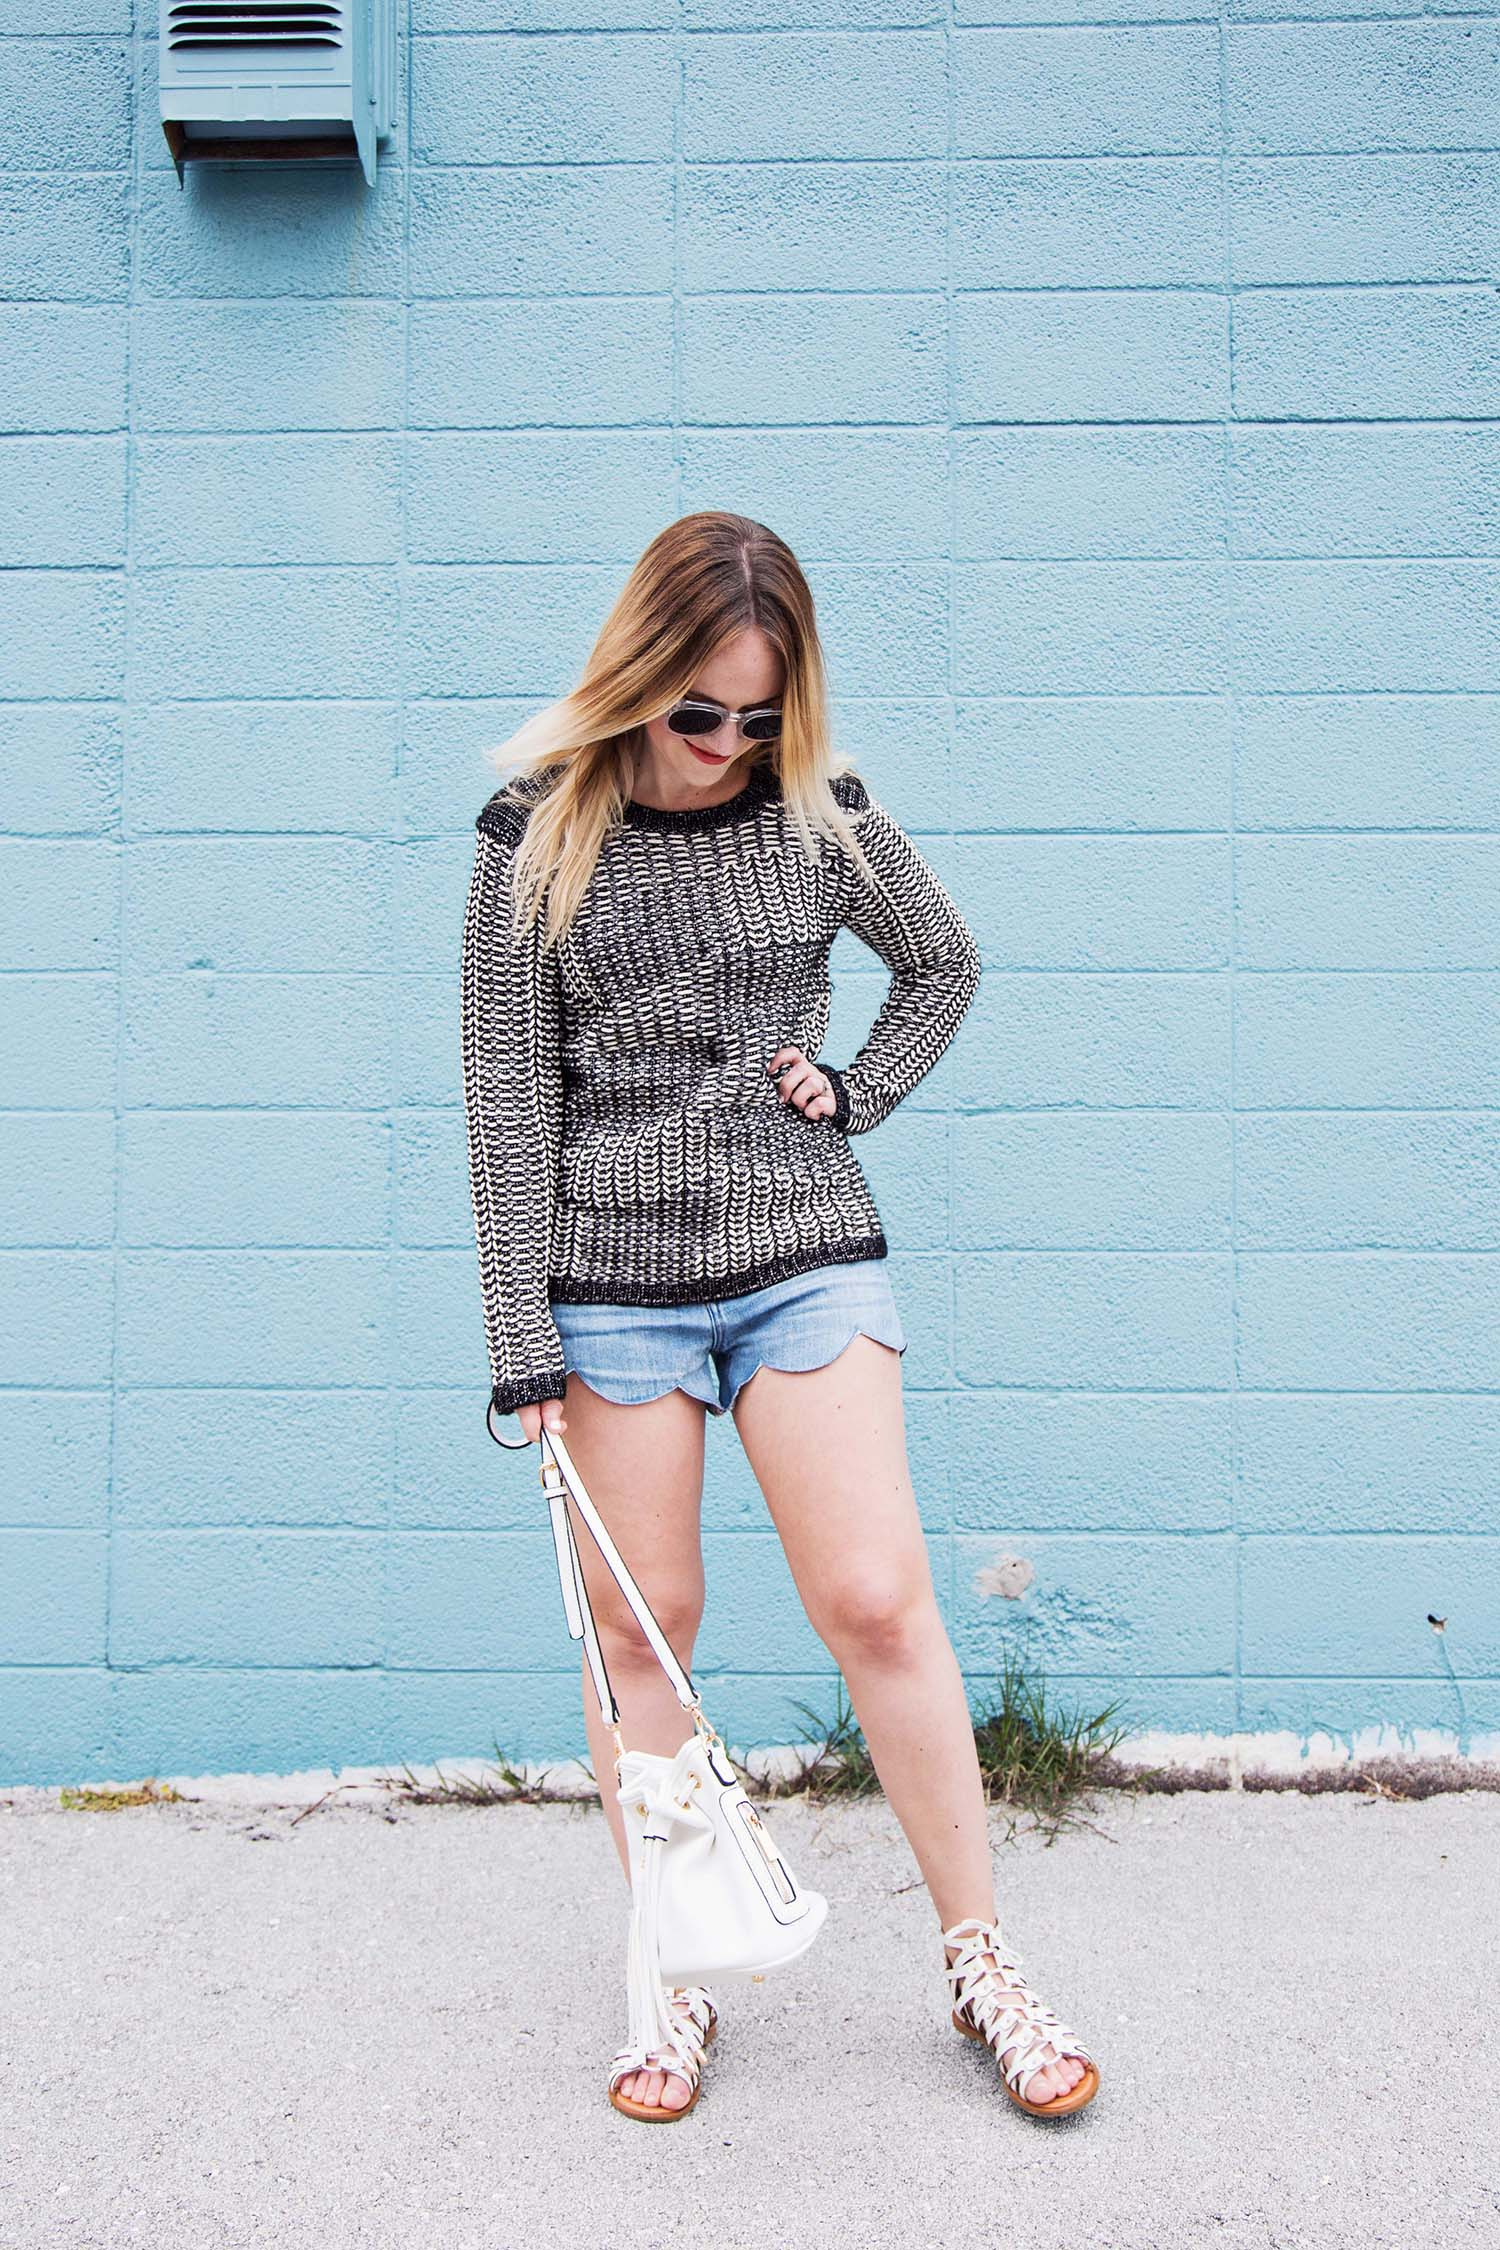 Sweaters and shorts